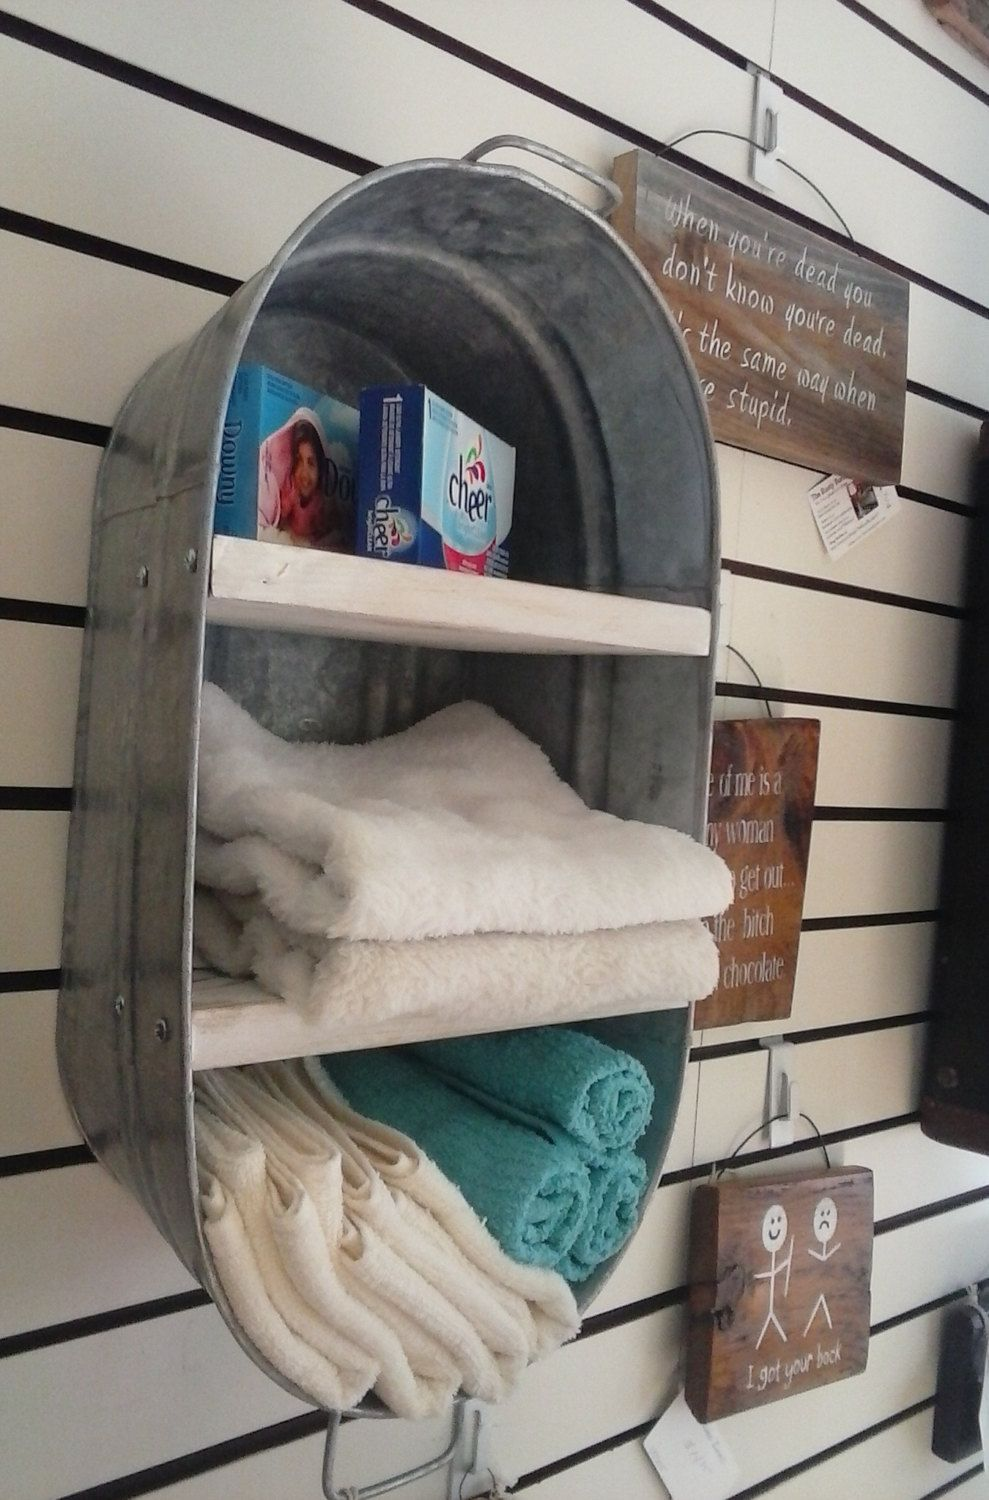 Christmas Gift For Mom. Washtub Bucket Upcycled Into A Hanging Wall Shelf  Cupboard Towel Rack. Great For A Bathroom Or Kitchen. Home Decor By ...